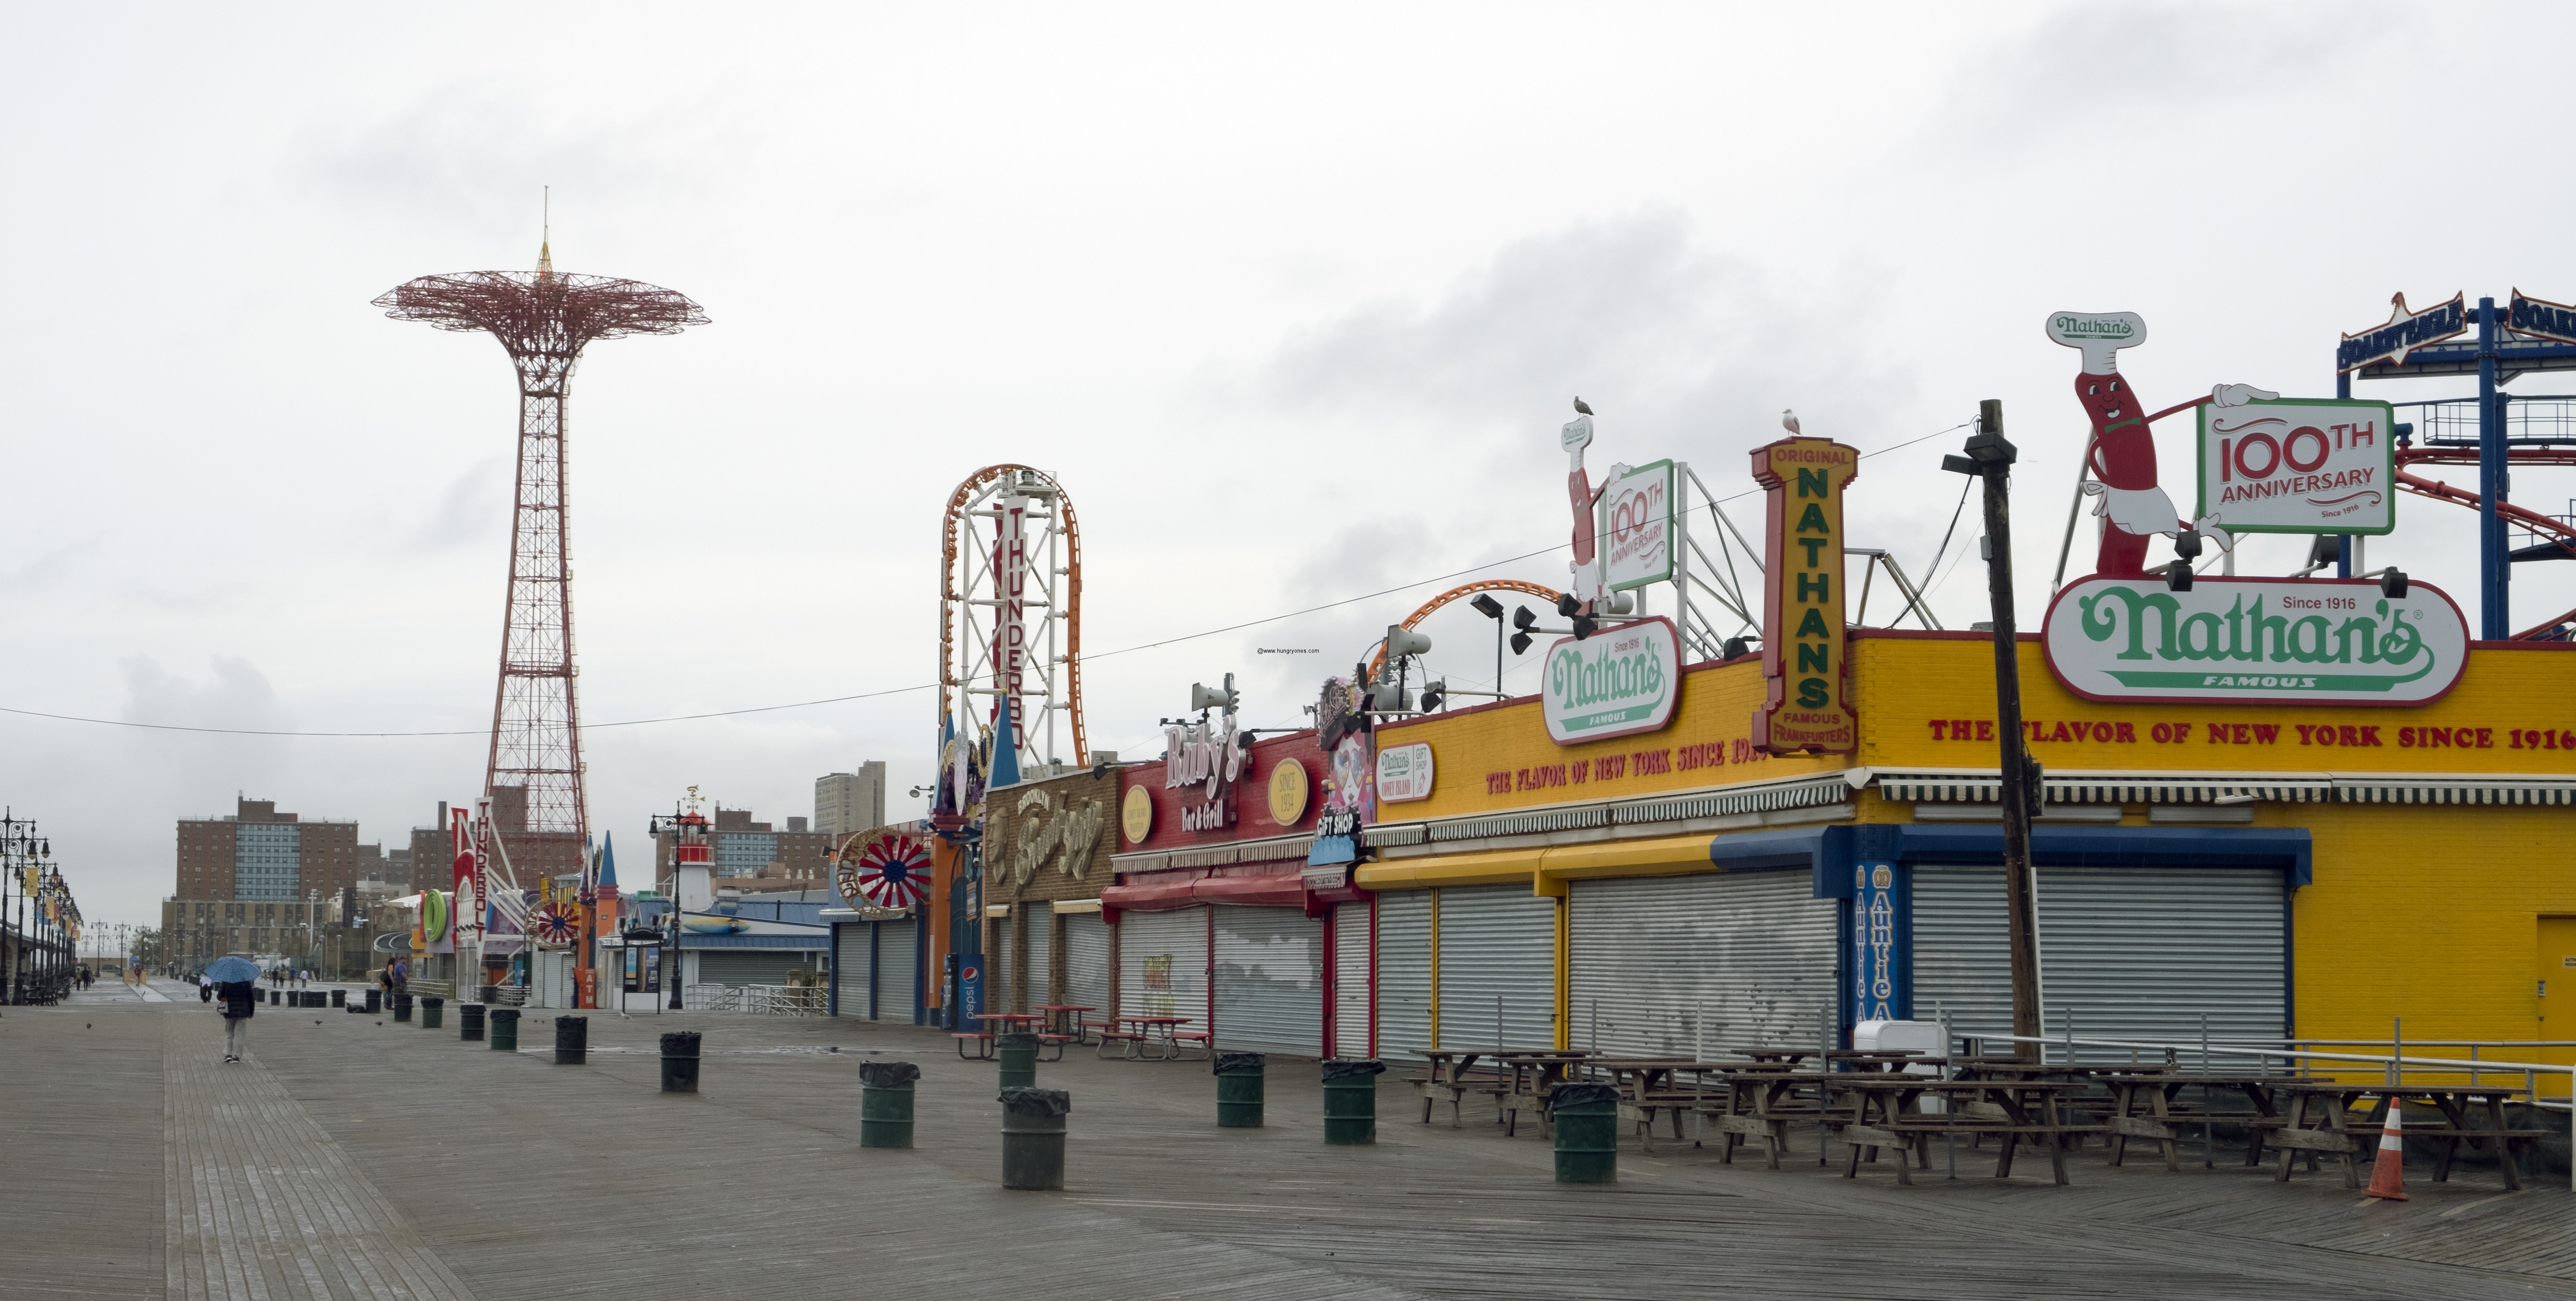 Getting To Coney Island